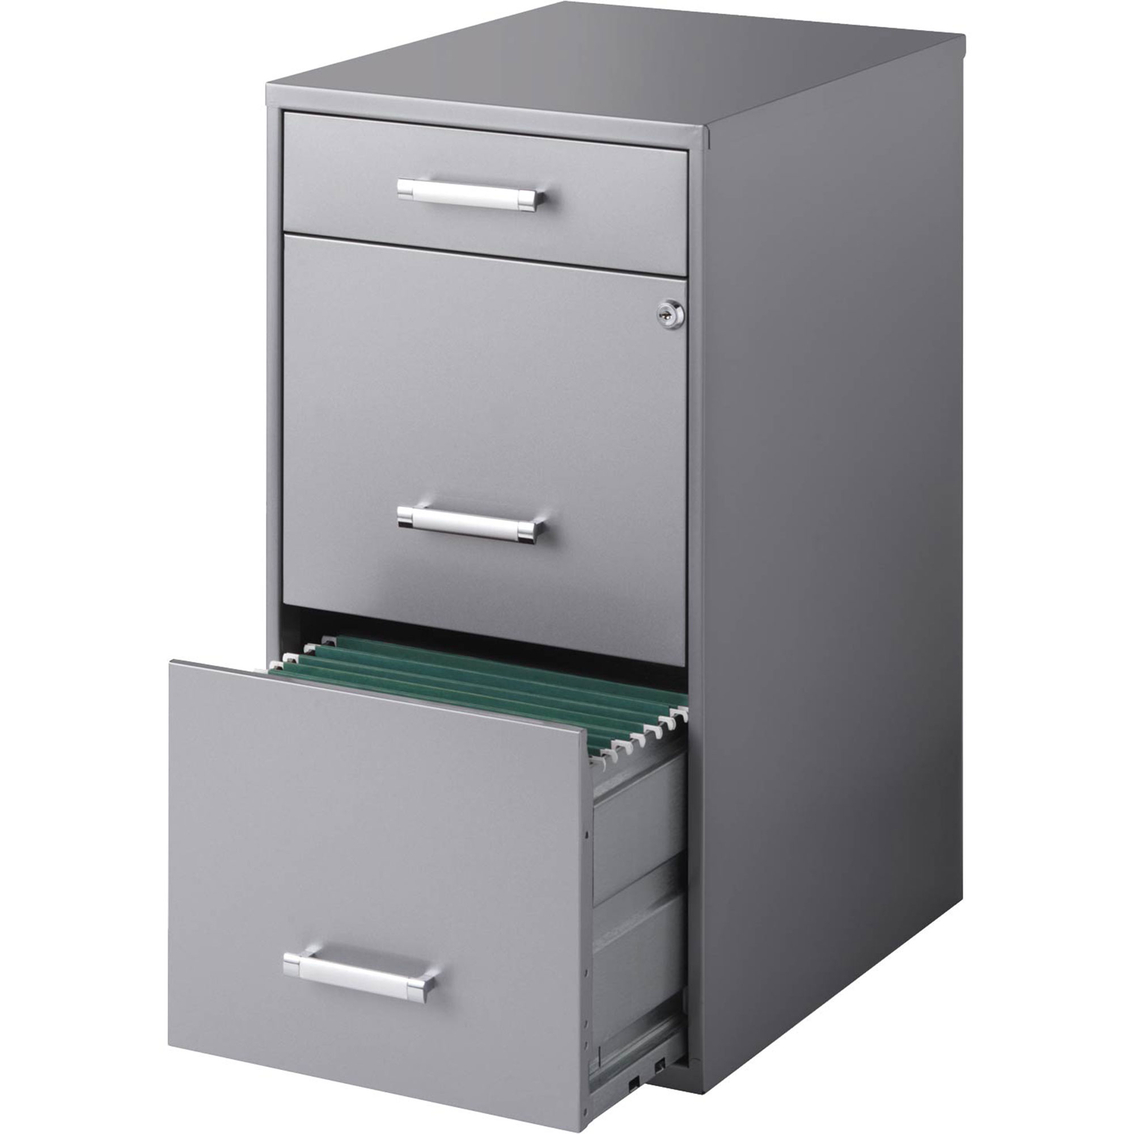 File Cabinet | File Cabinets | Home & Appliances | Shop The Exchange